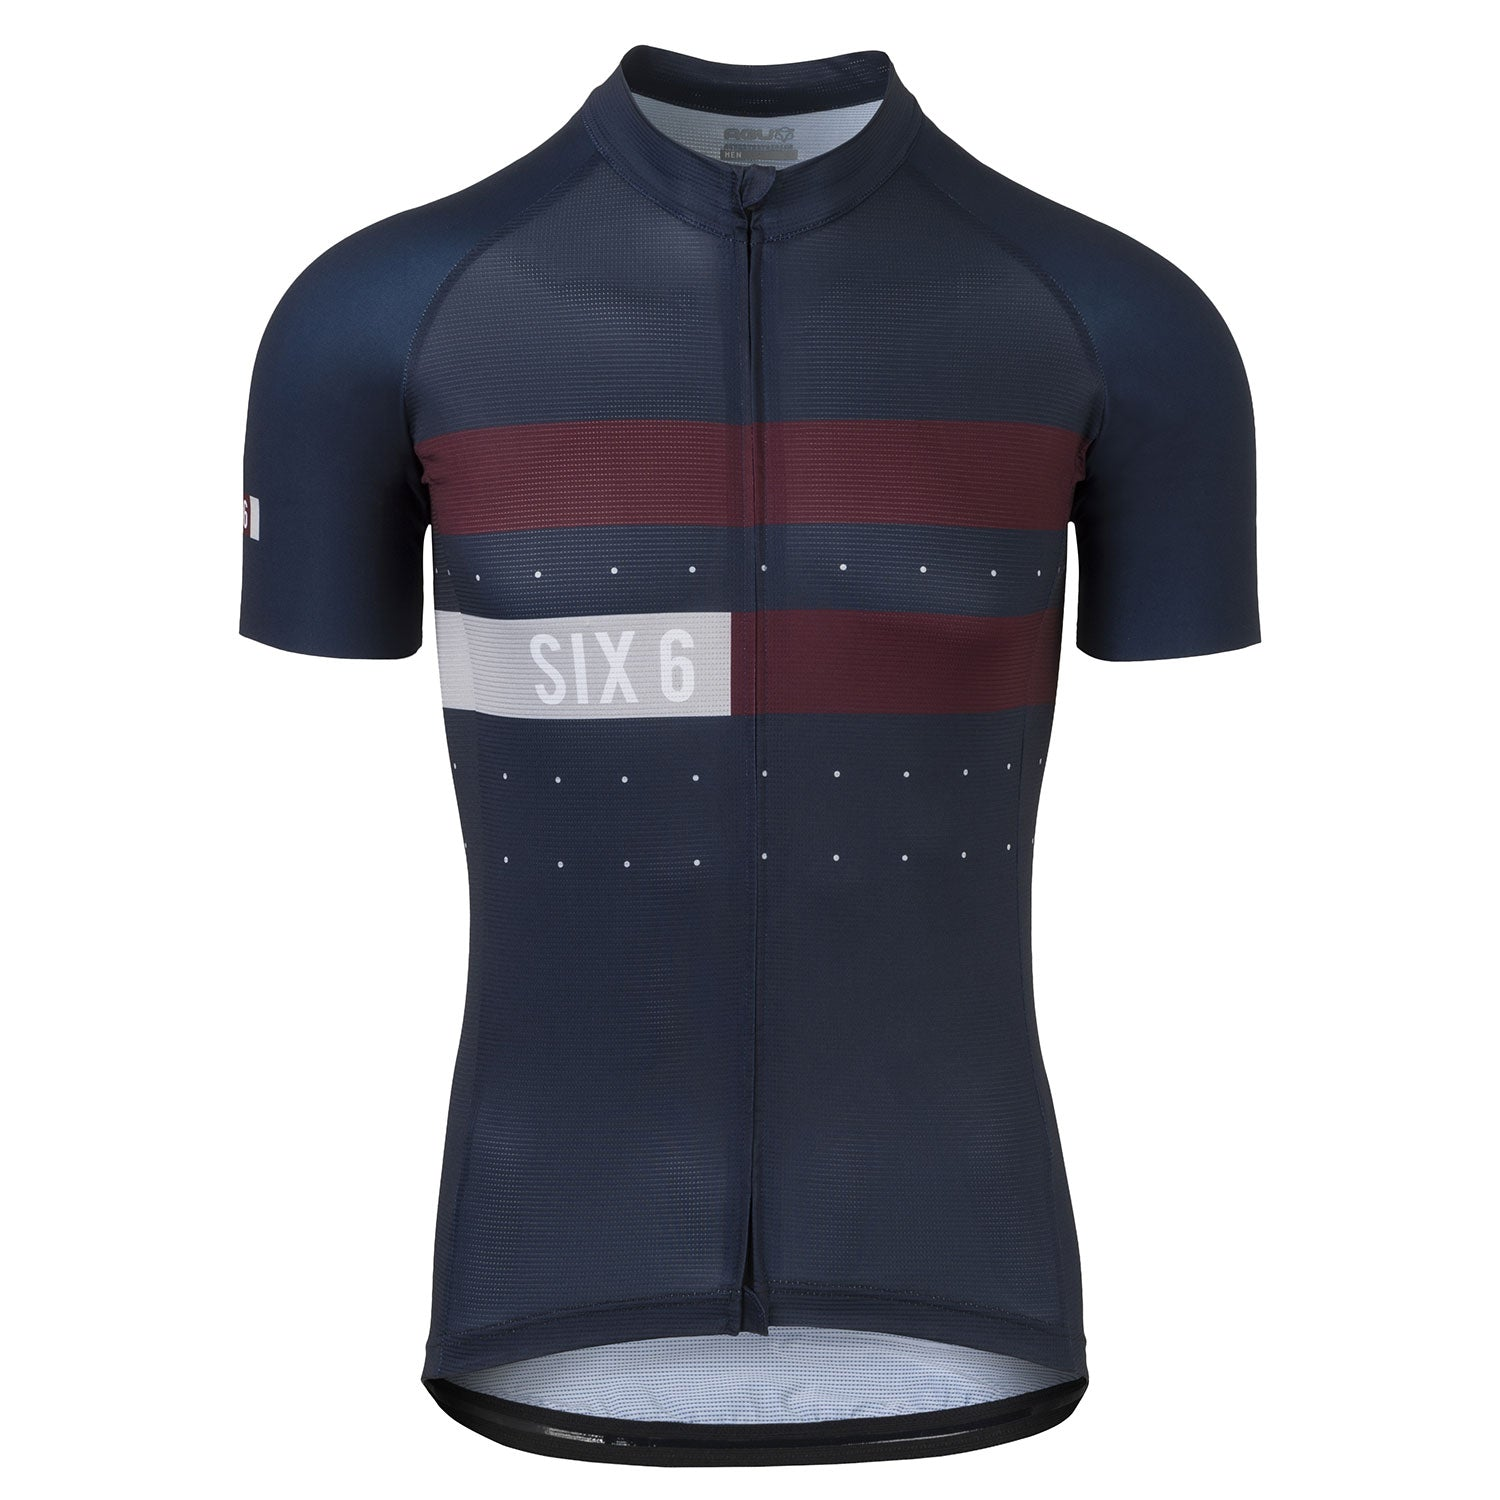 Six6 Deep Blue/Fig Classic Cycling Jersey